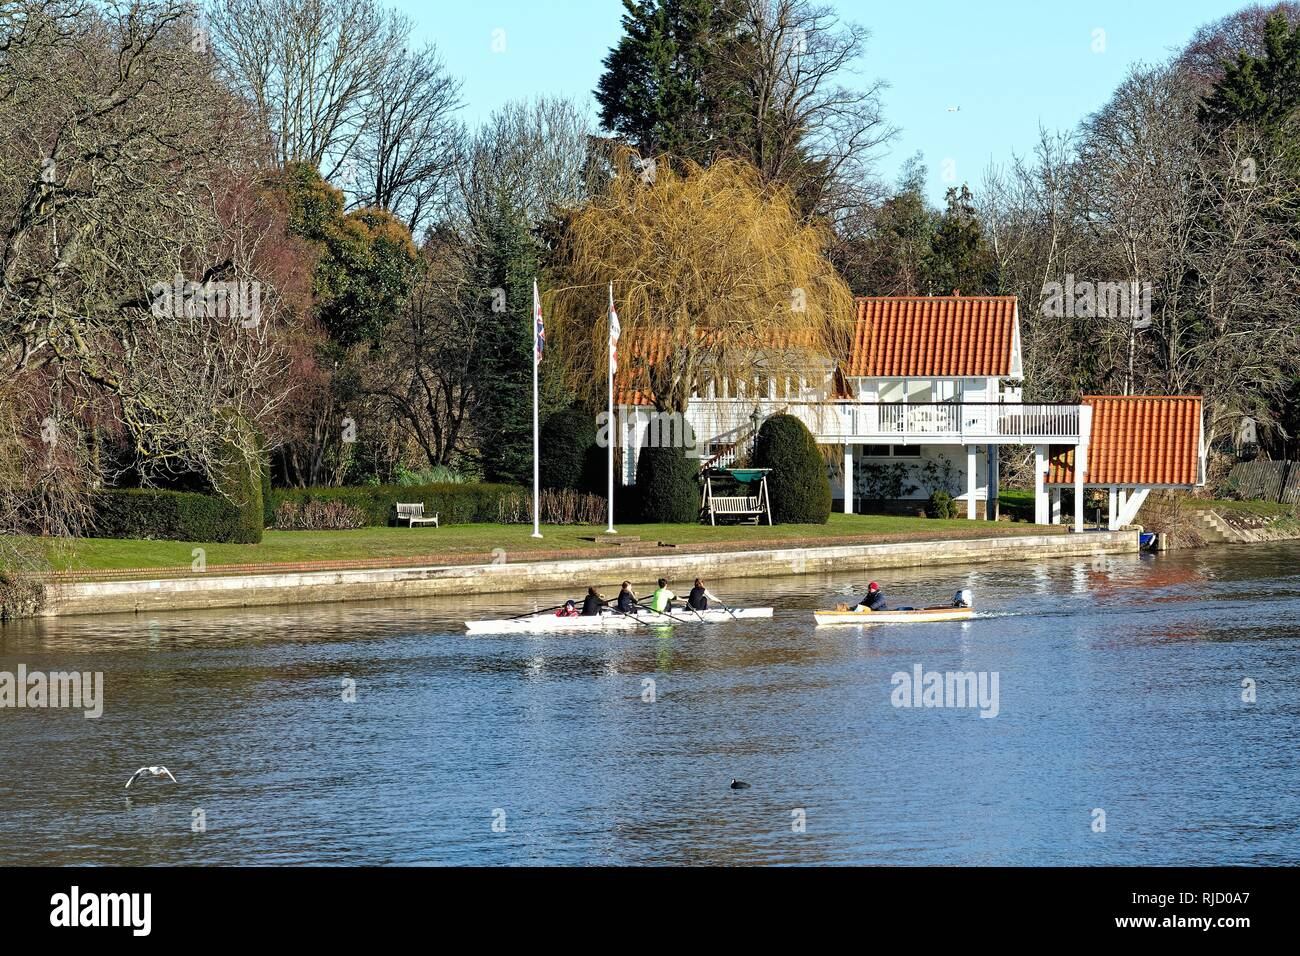 A coxed four boat rowing practising on the River Thames on a sunny winters day at Sunbury Surrey England UK - Stock Image